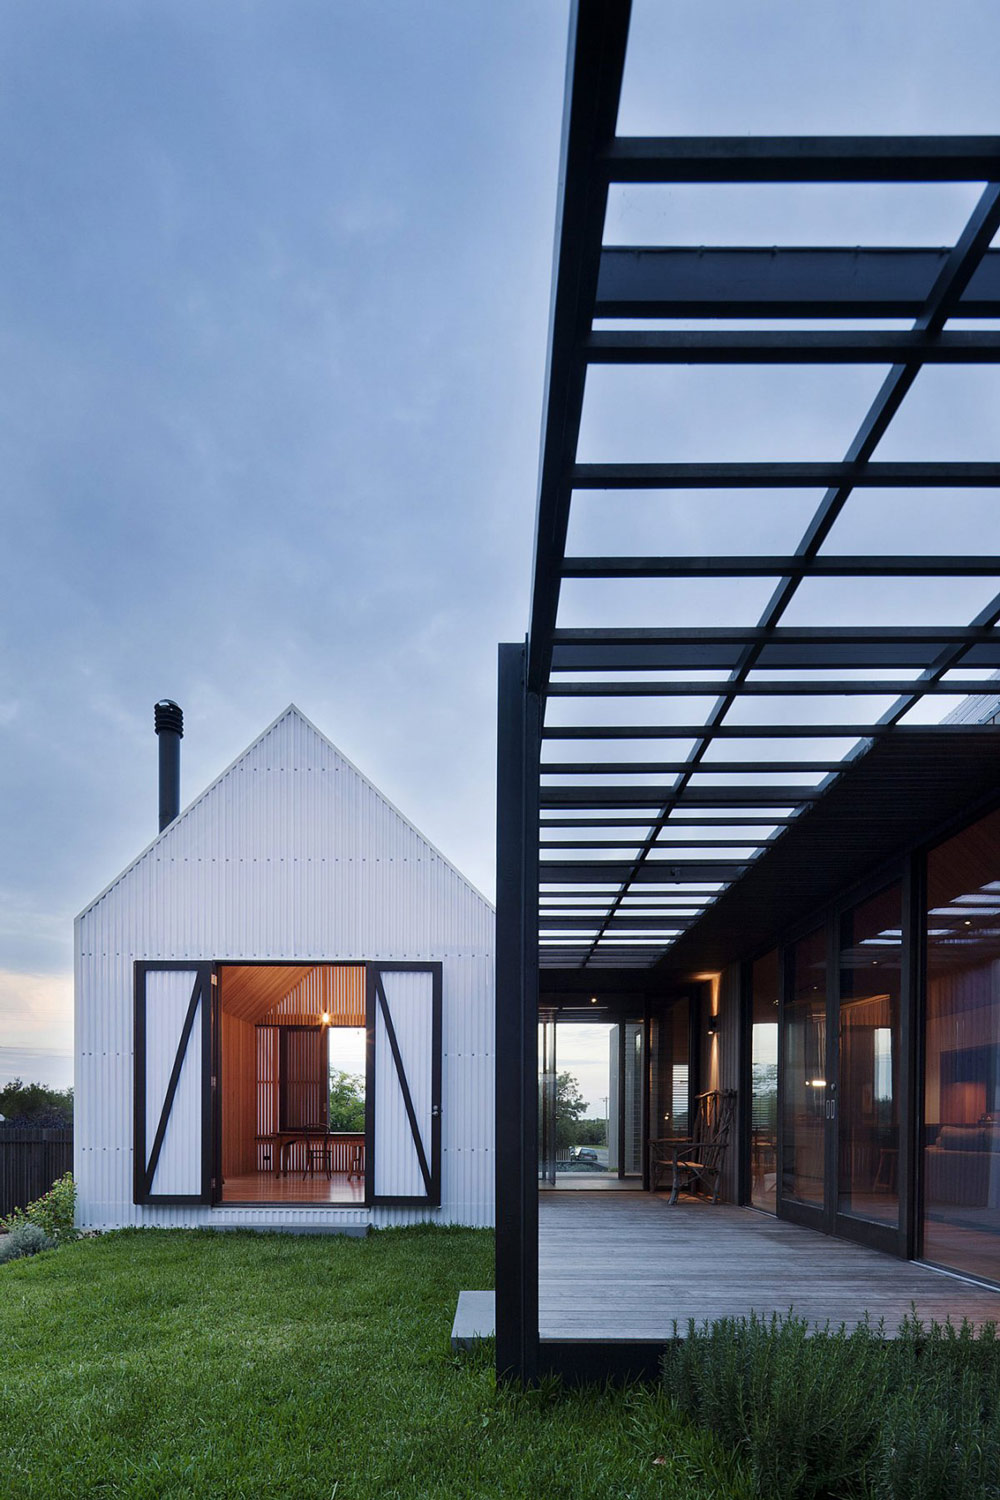 Terrace, Seaview House in Barwon Heads, Australia by Jackson Clements Burrows